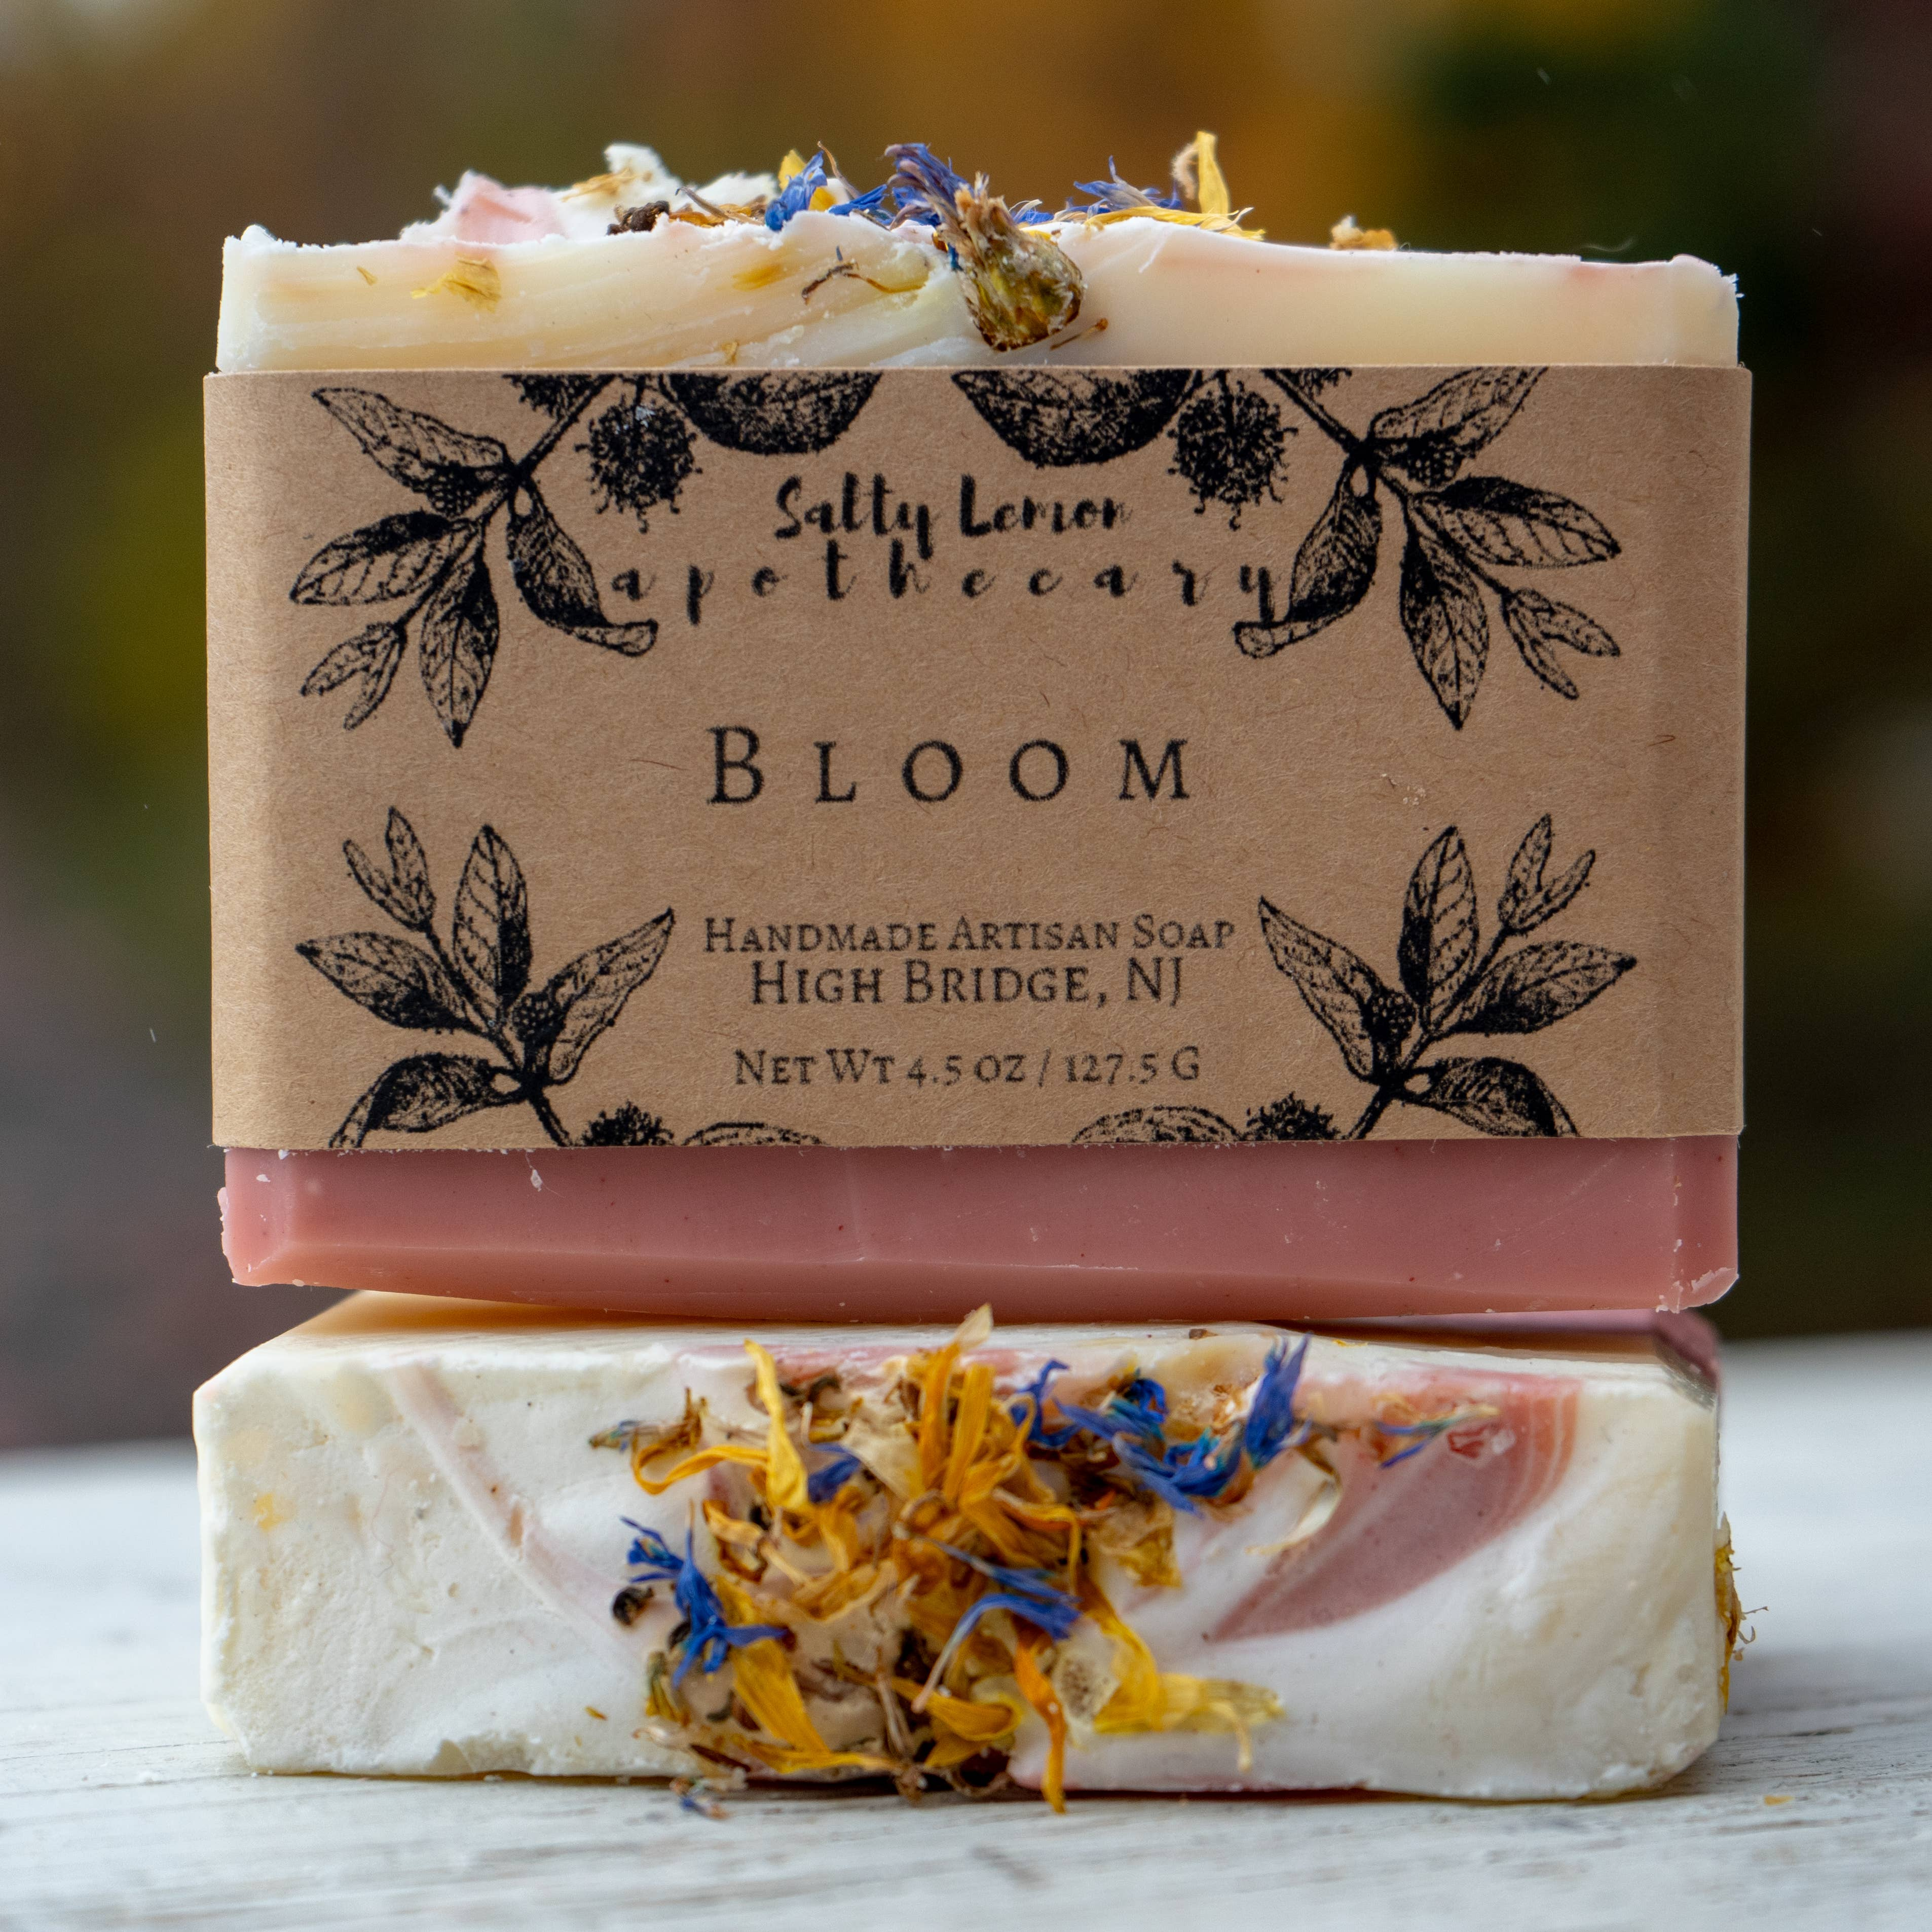 Salty Lemon Apothecary Bloom Soap